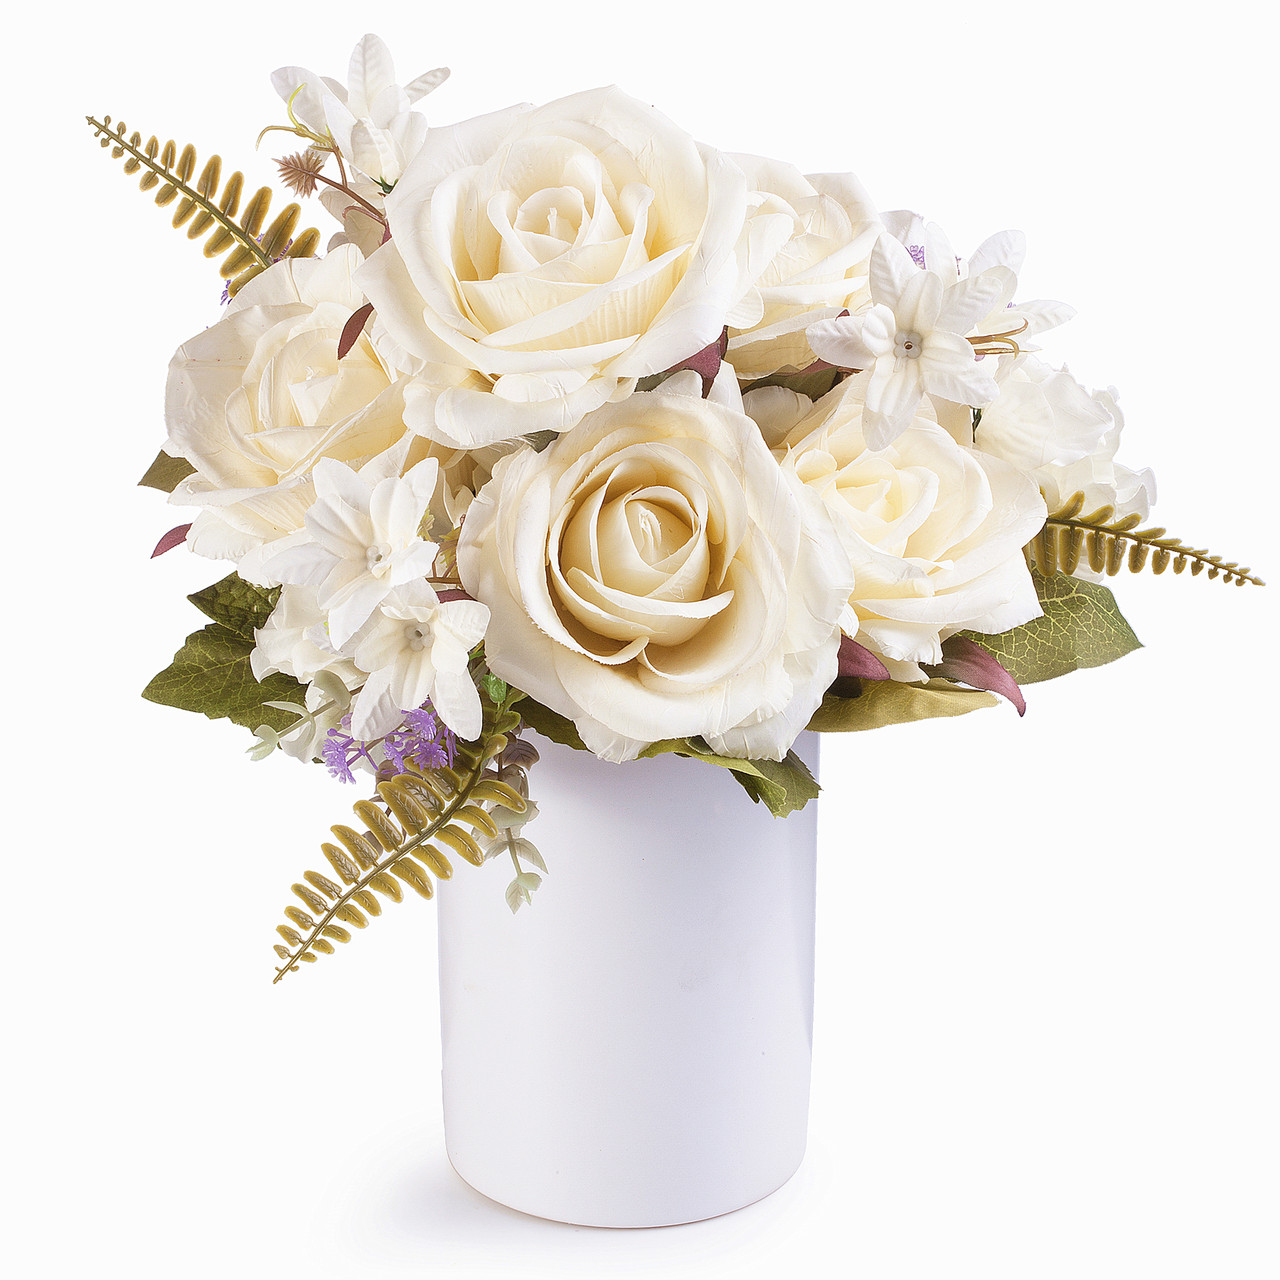 Cream Rose And Hydrangea Silk Flower Arrangement In Ceramic Vase With Faux Water Enova Home